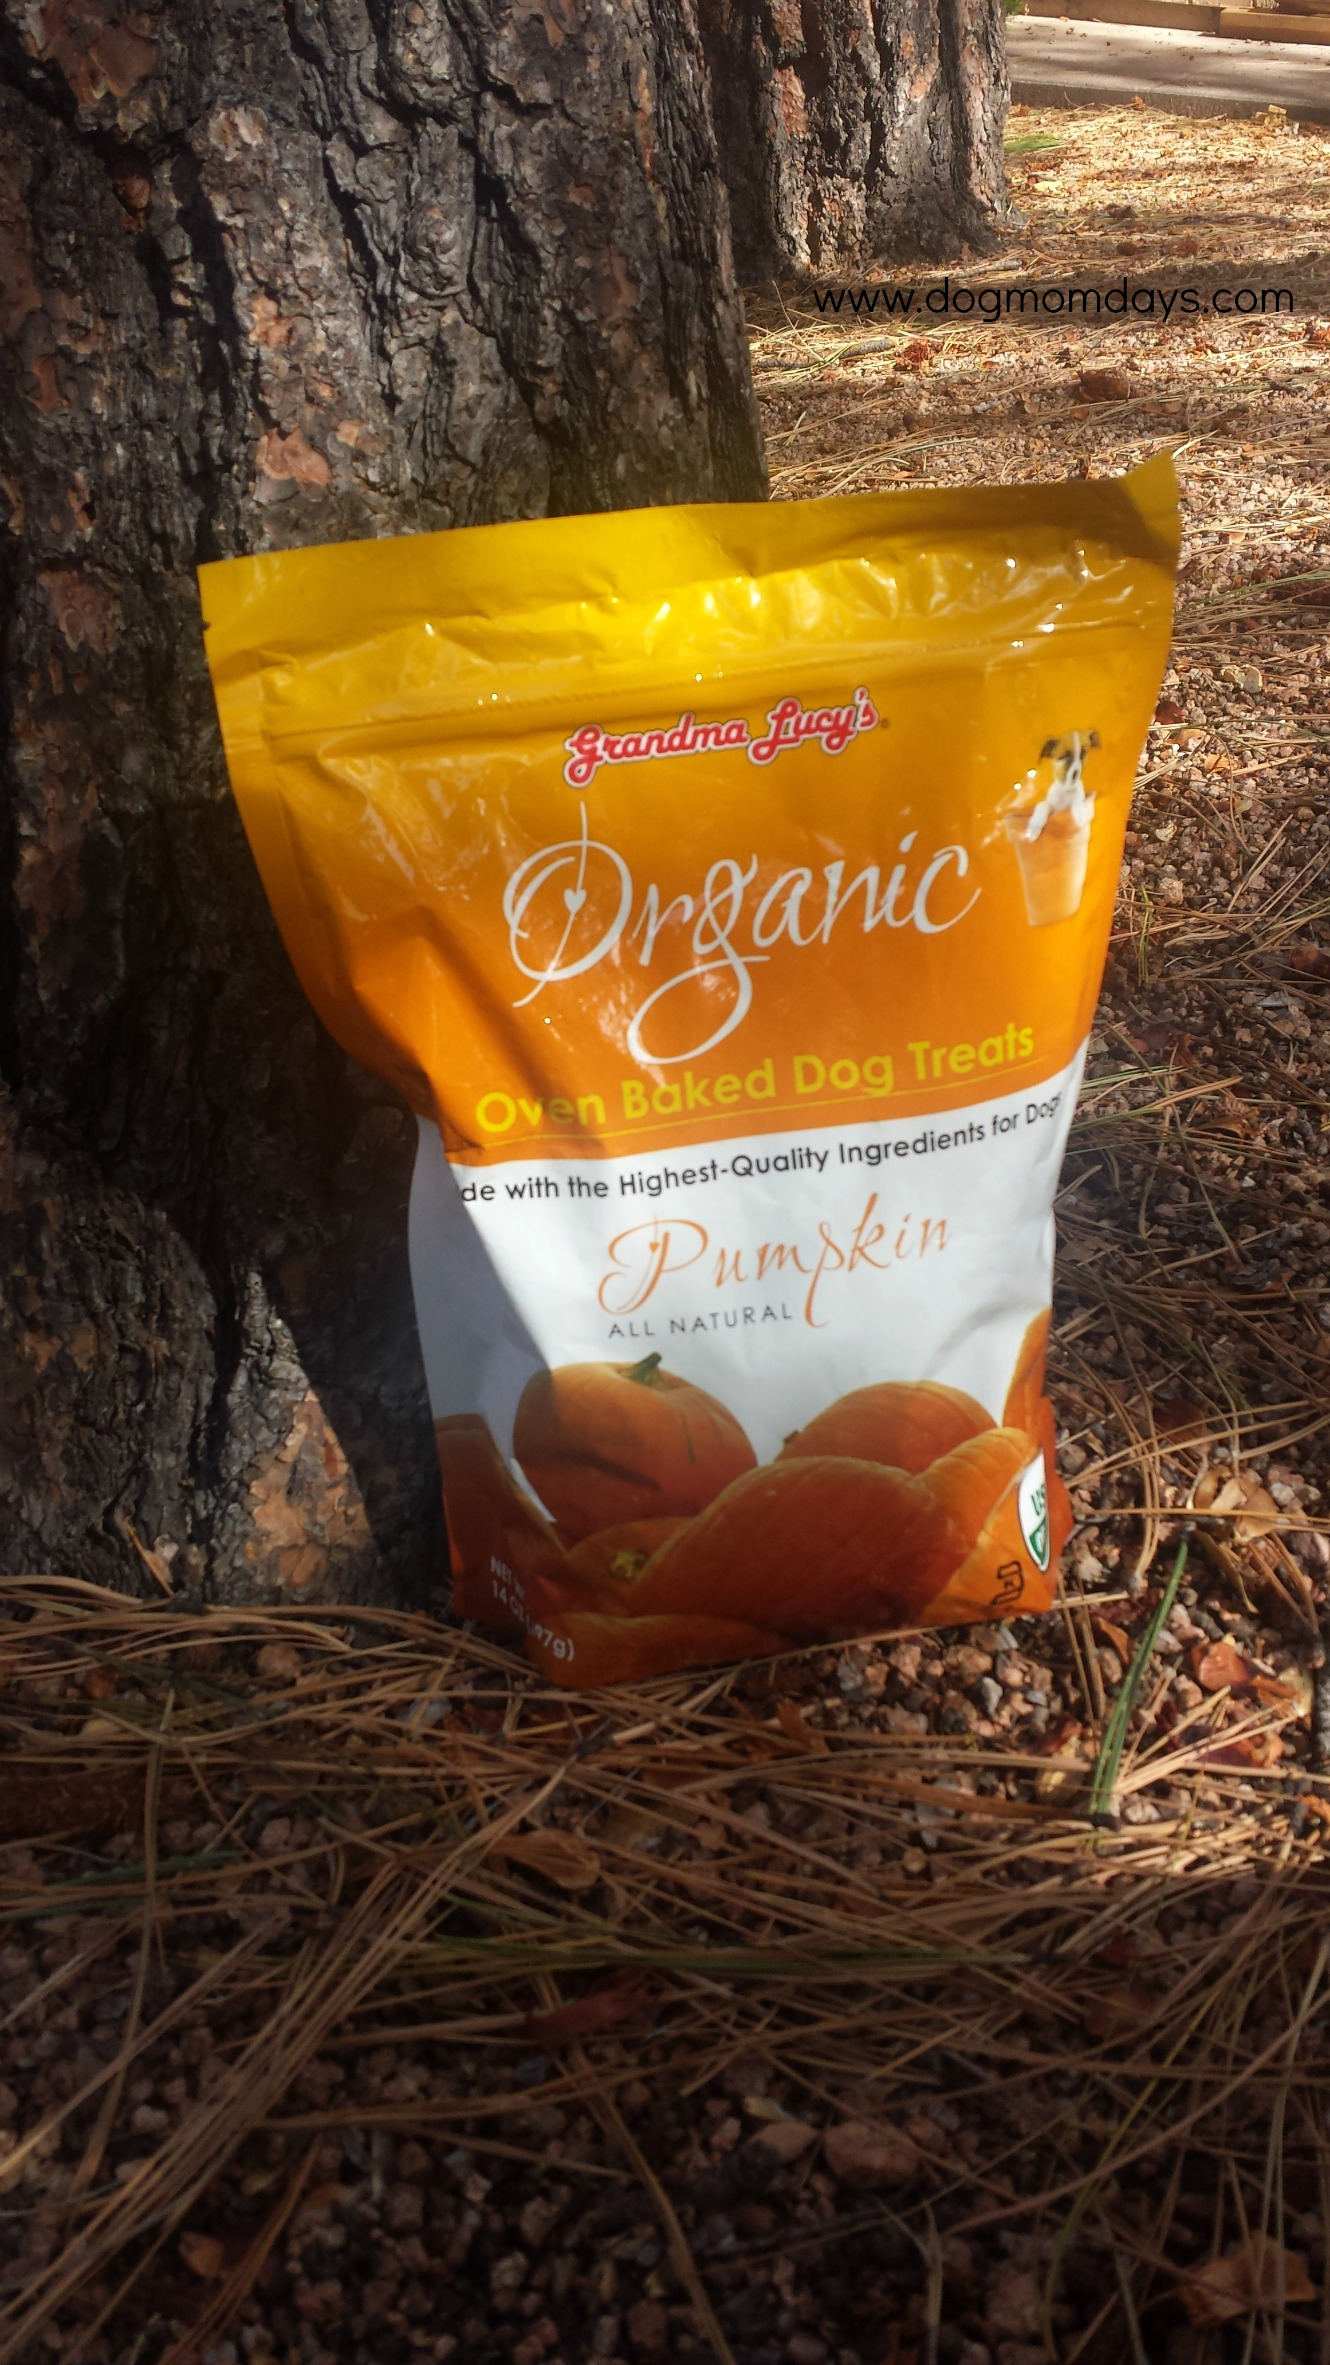 Grandma Lucy's Organic Baked Dog Treats product review